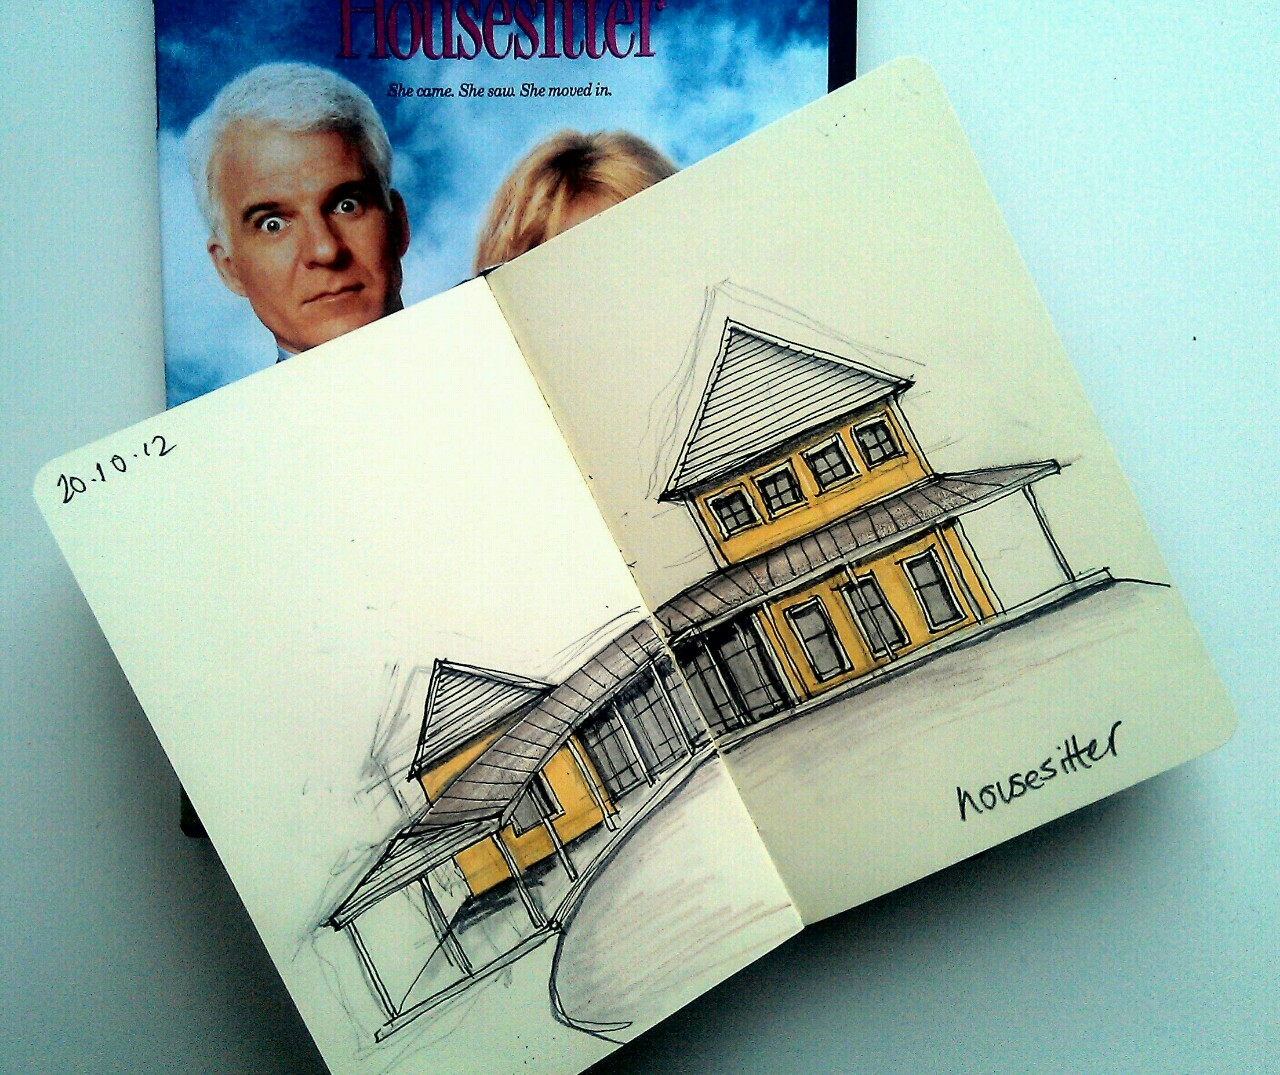 365 drawings later … day 263 … housesitter